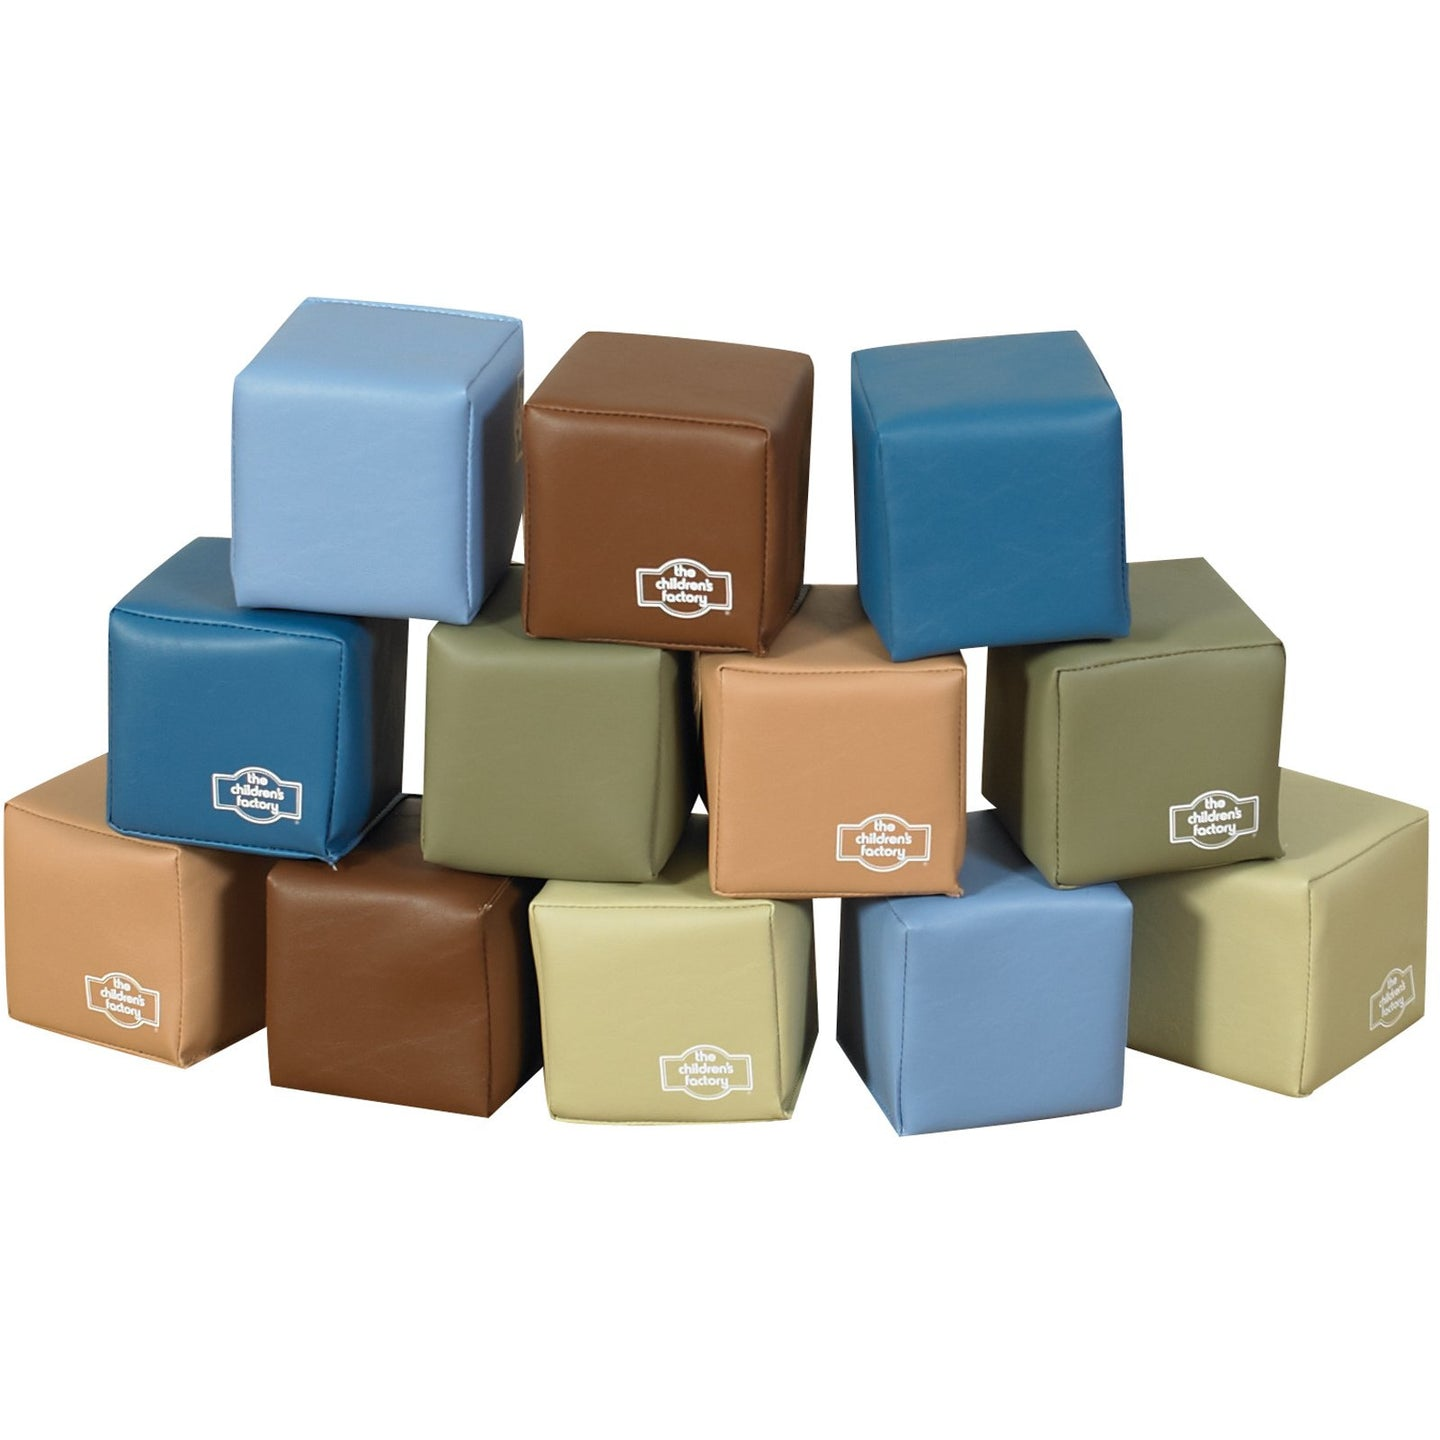 Children's Factory Baby Blocks in Woodland Colors – Set of 12 SKU CF705-392 - Welcome 2 My Crib